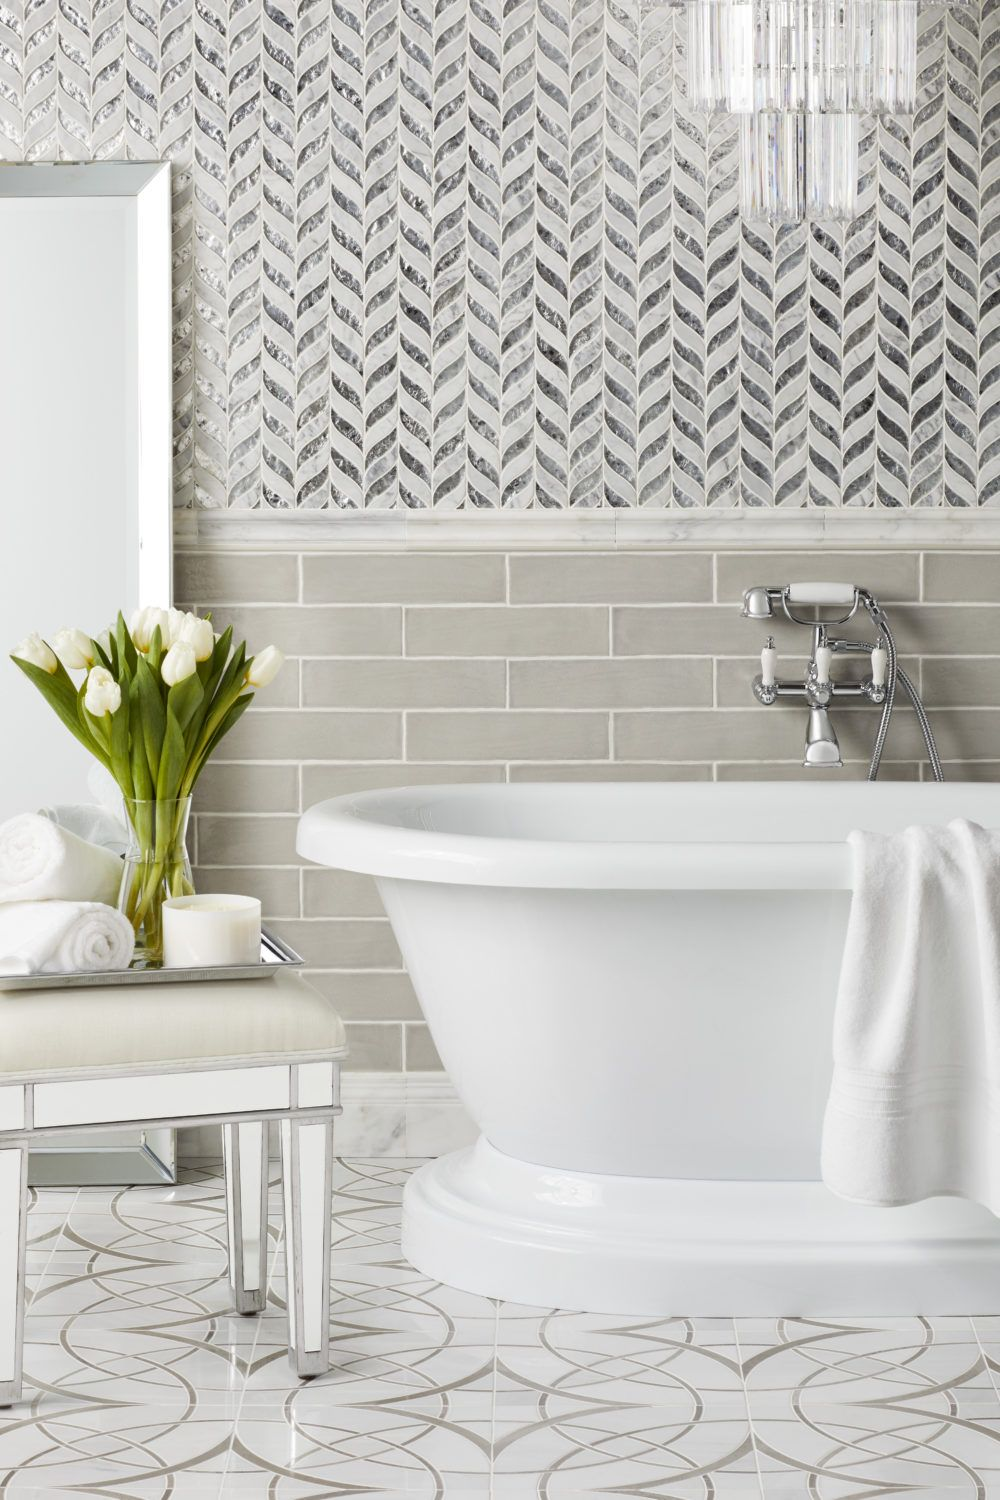 Distinct Designs With Waterjet Mosaics The Tile Shop Blog The Tile Shop Mosaic Bathroom Tile Marble Showers